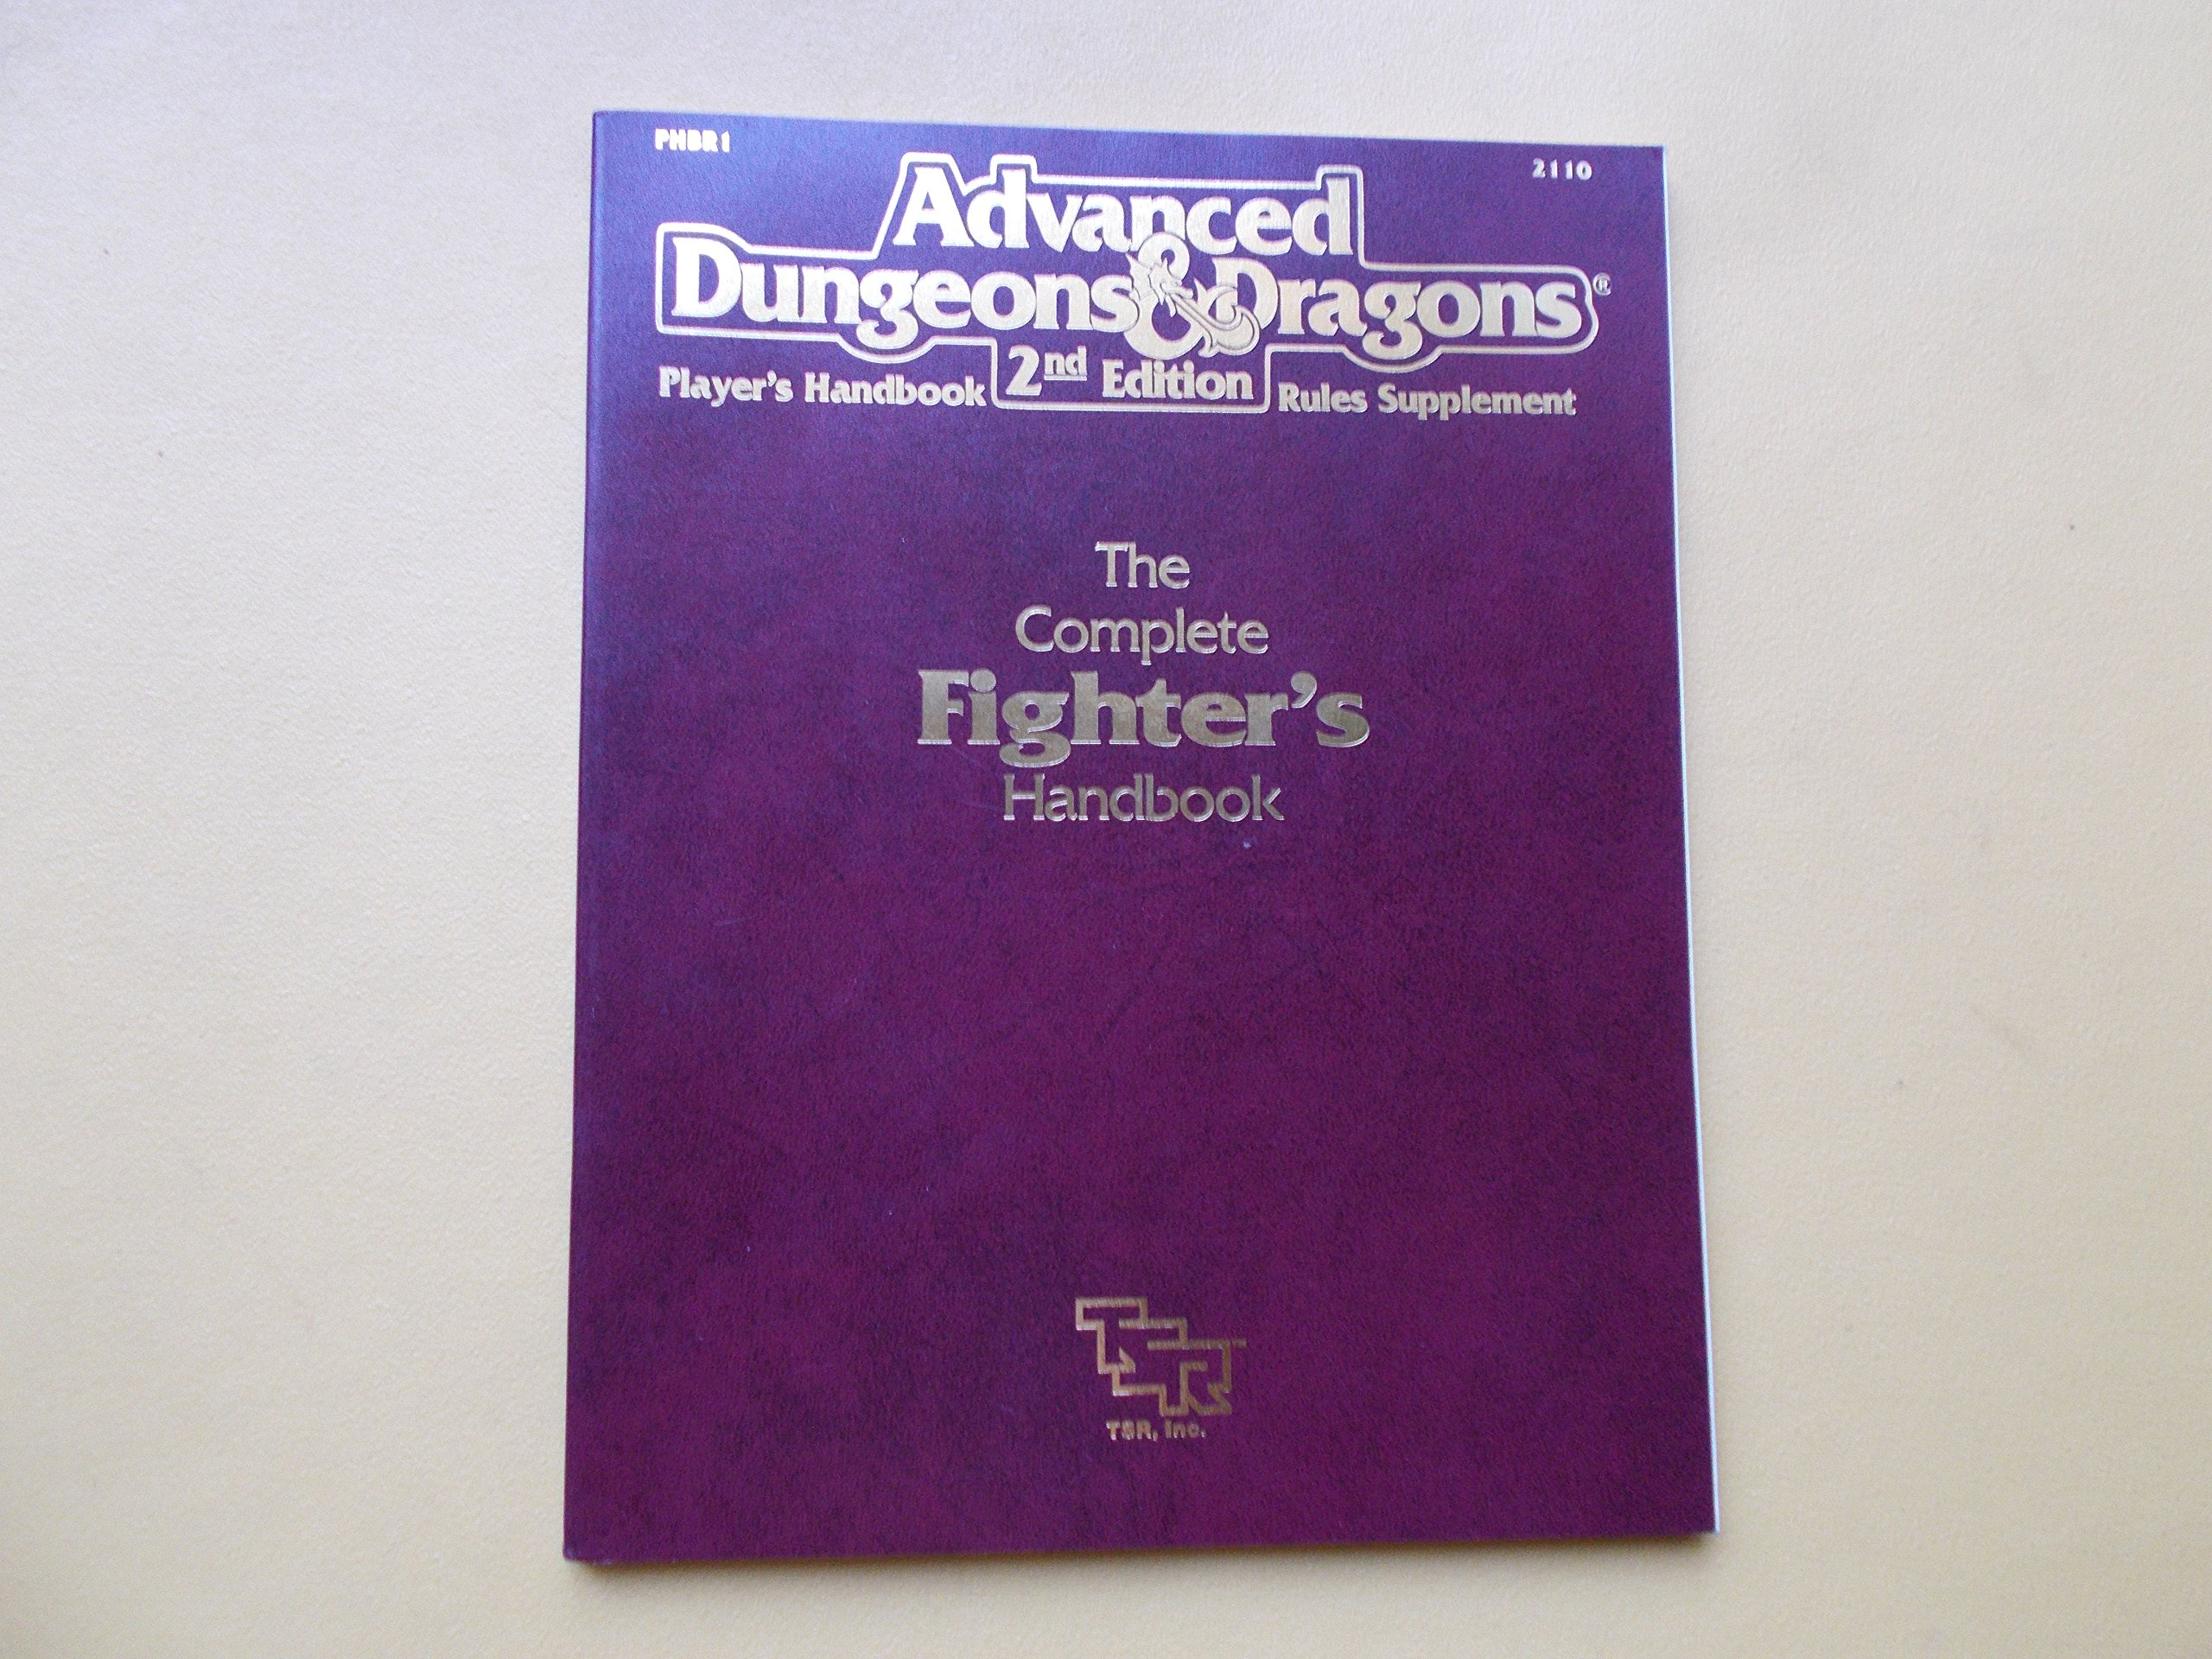 Advanced Dungeons & Dragons Player's Handbook 2nd Edition (Player's Handbook/Rules Supplement), Aaron Allston